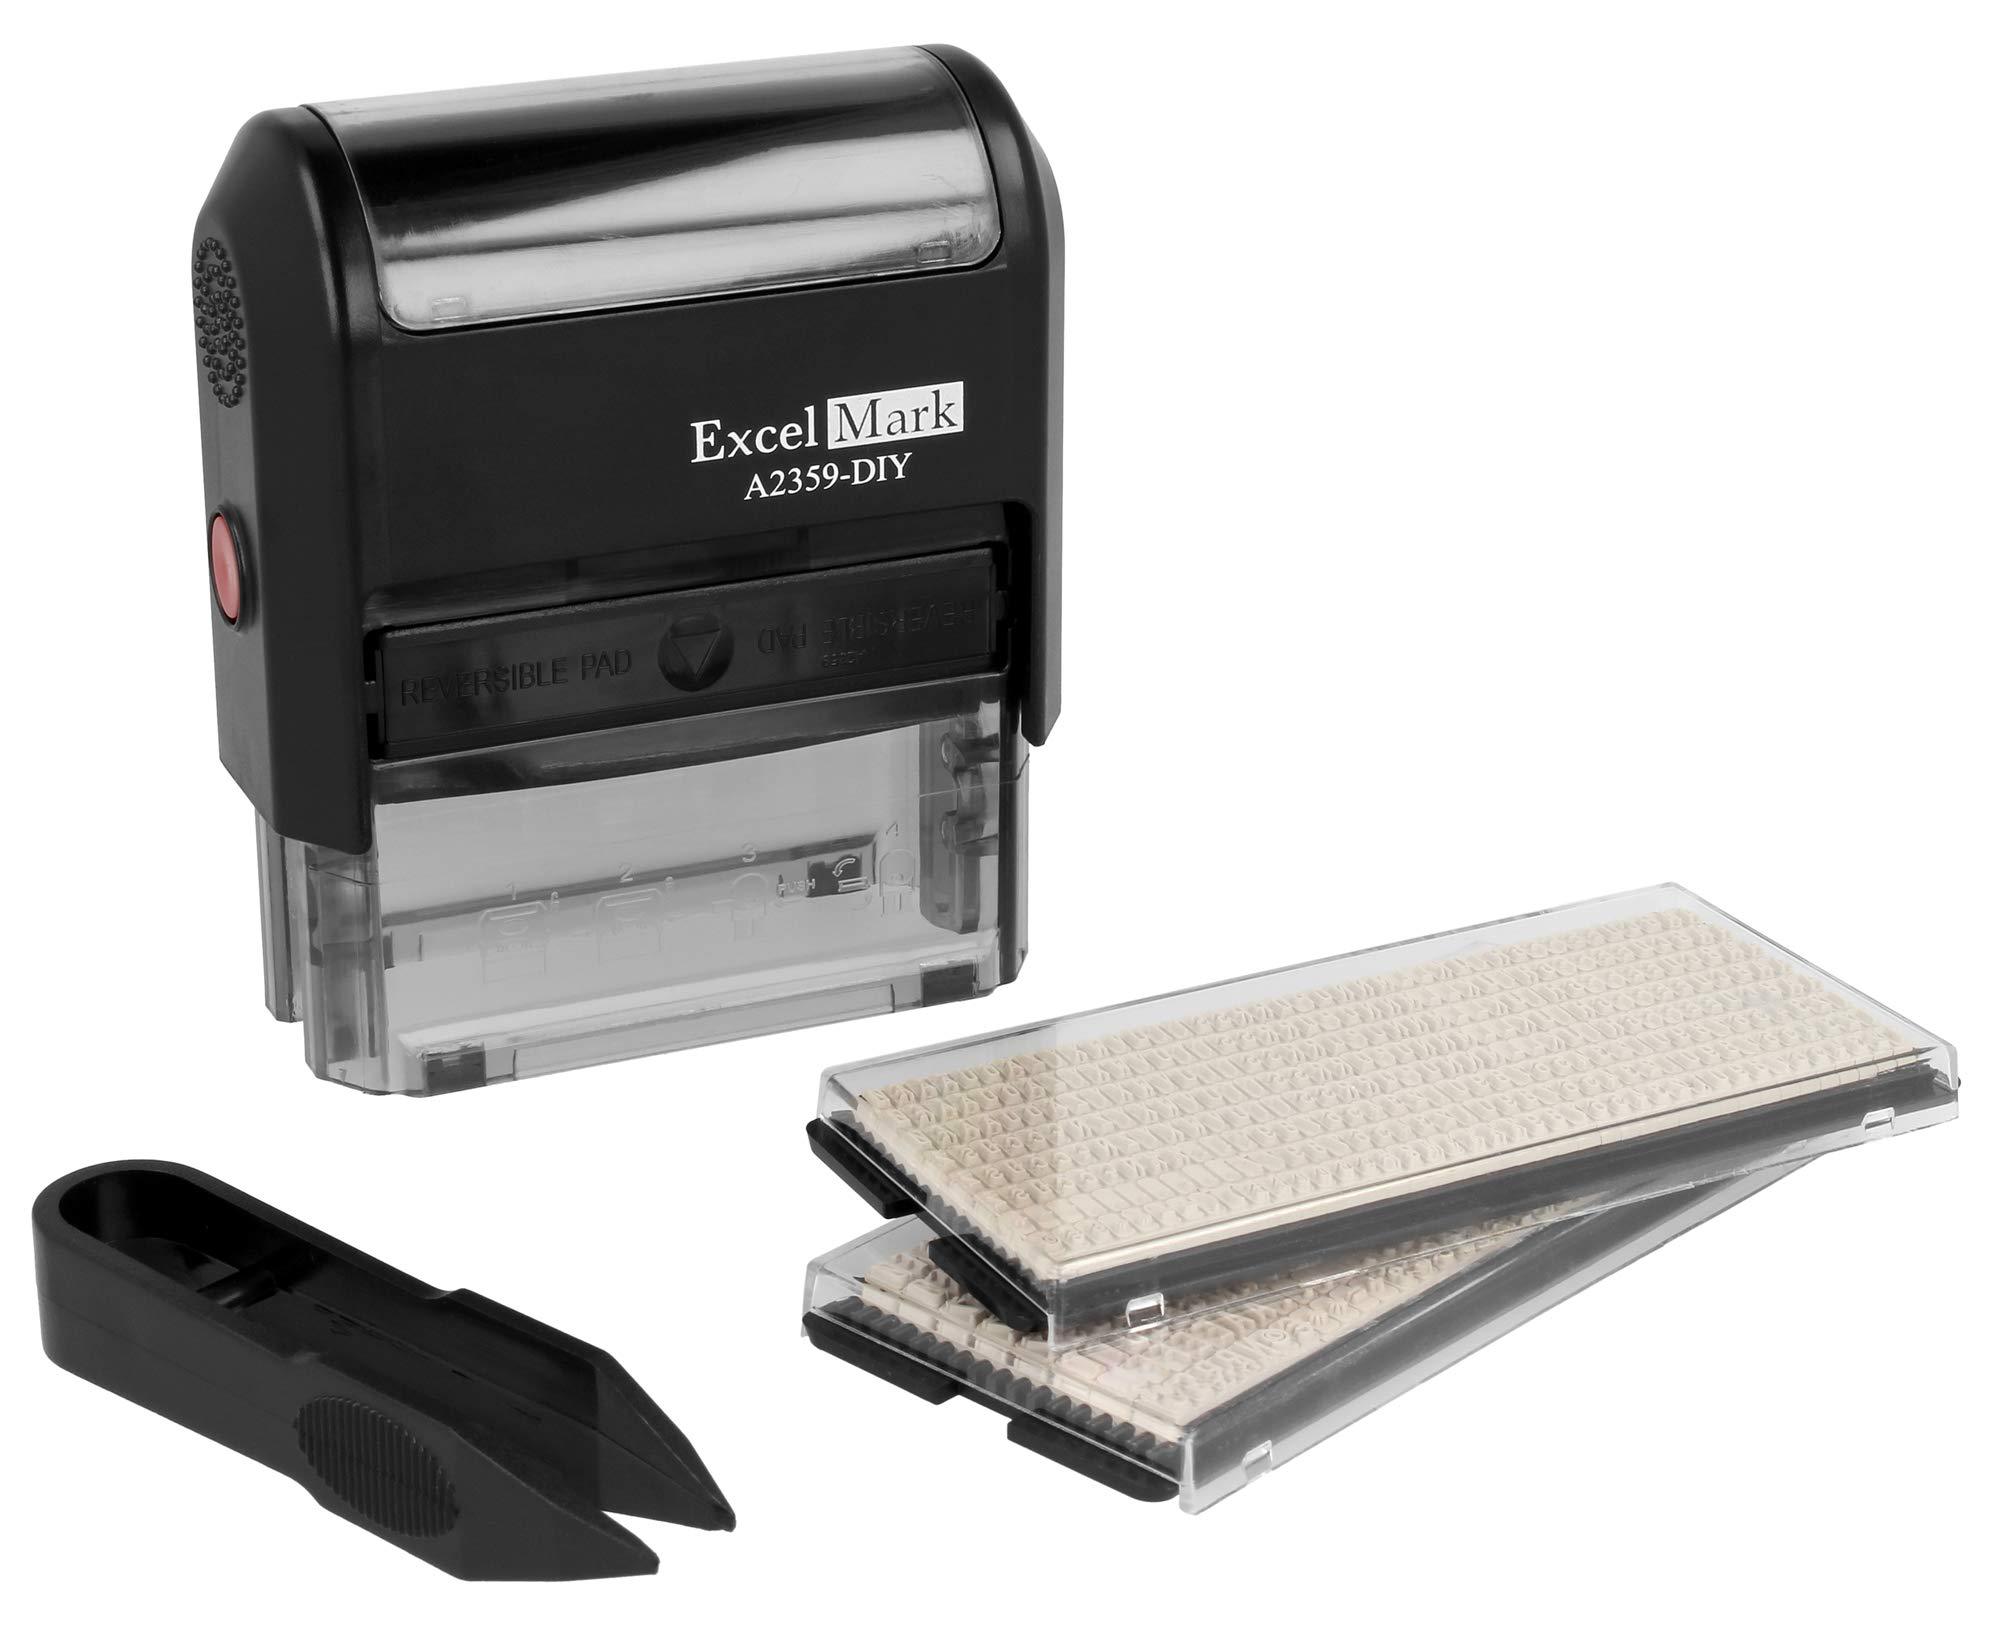 ExcelMark Self-Inking Do It Yourself Stamp Kit - A2359-DIY - Black Ink by ExcelMark